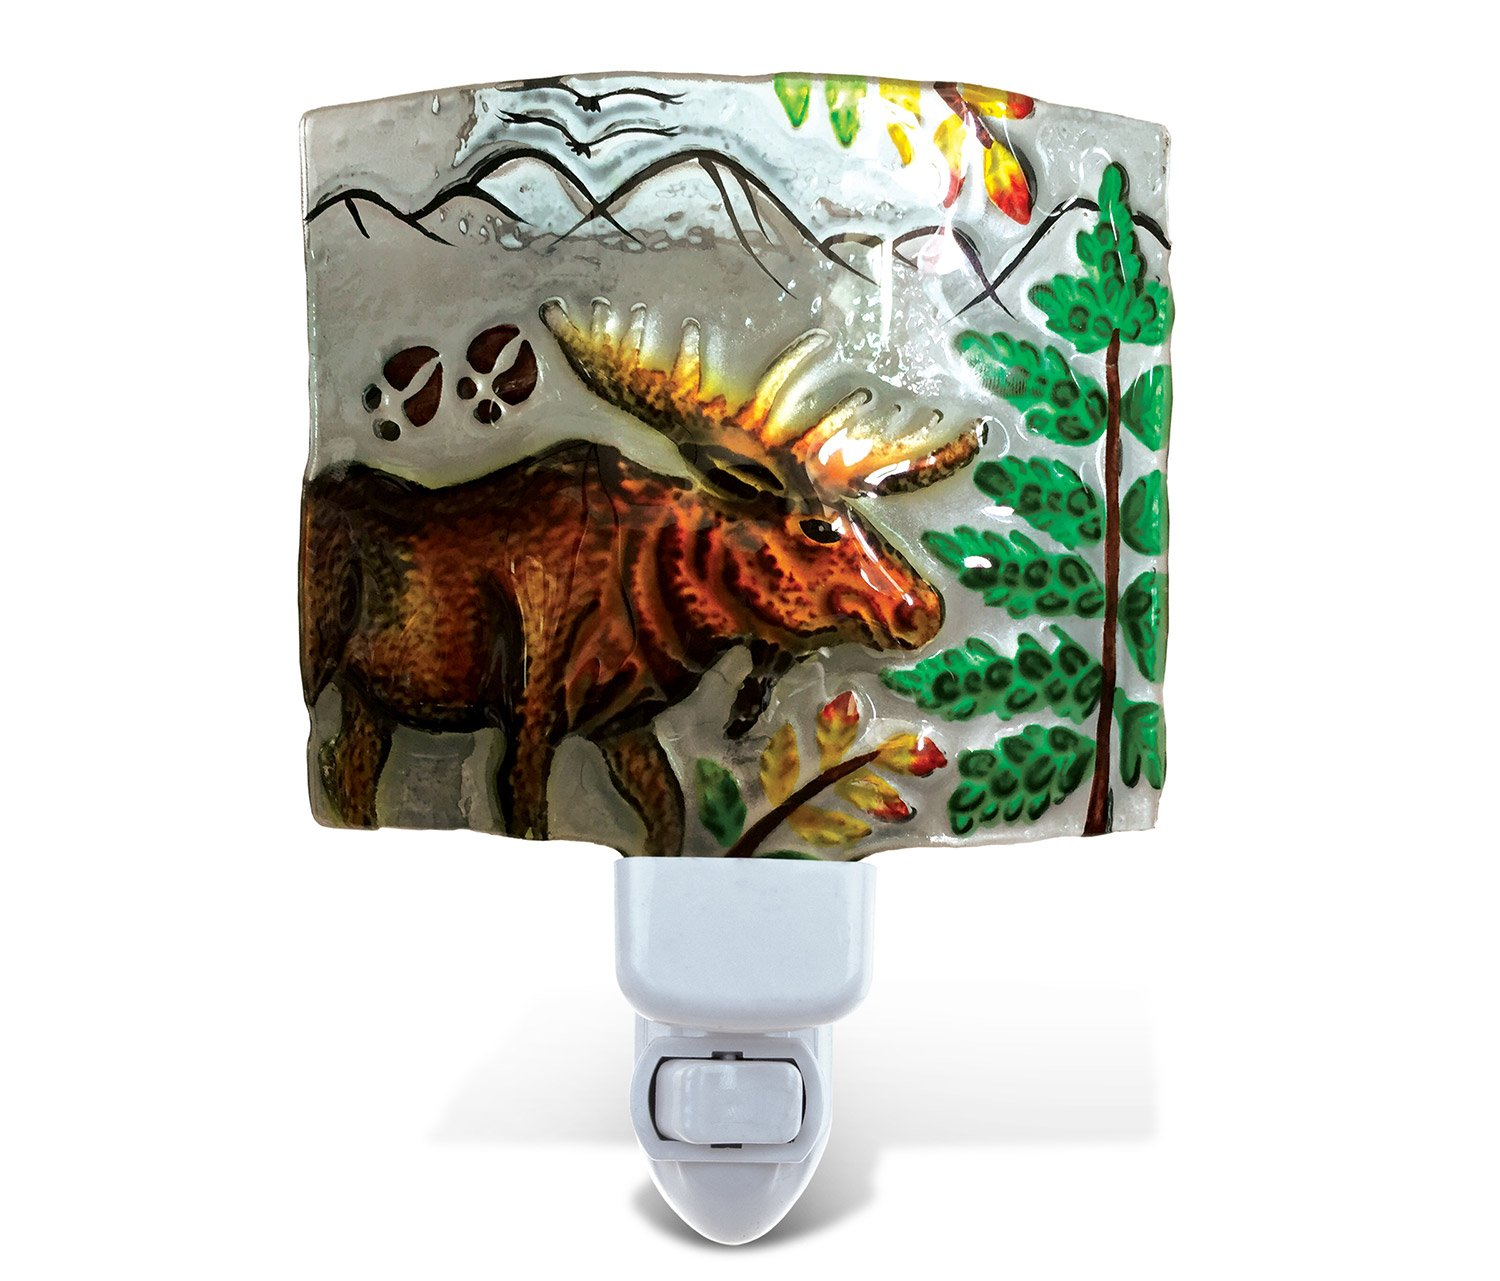 Puzzled Nightlight - Moose Handcraft Art Glass and Metal Decorative Night Light Home Décor - Animal / Zoo Animals Theme - Elegant Unique Gift and Useful Souvenir - Item #9748